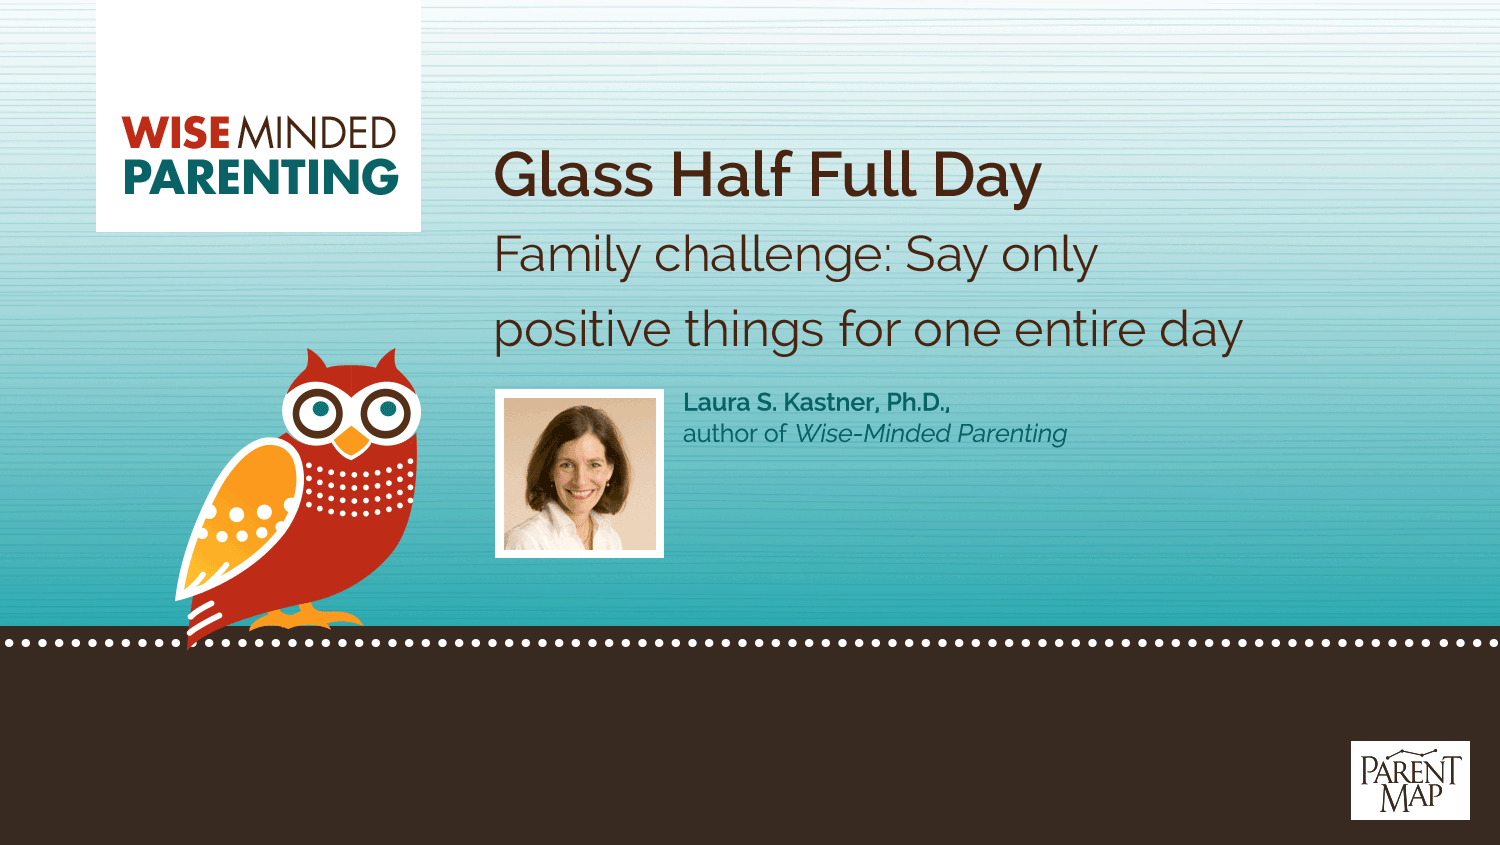 Glass Half Full Day